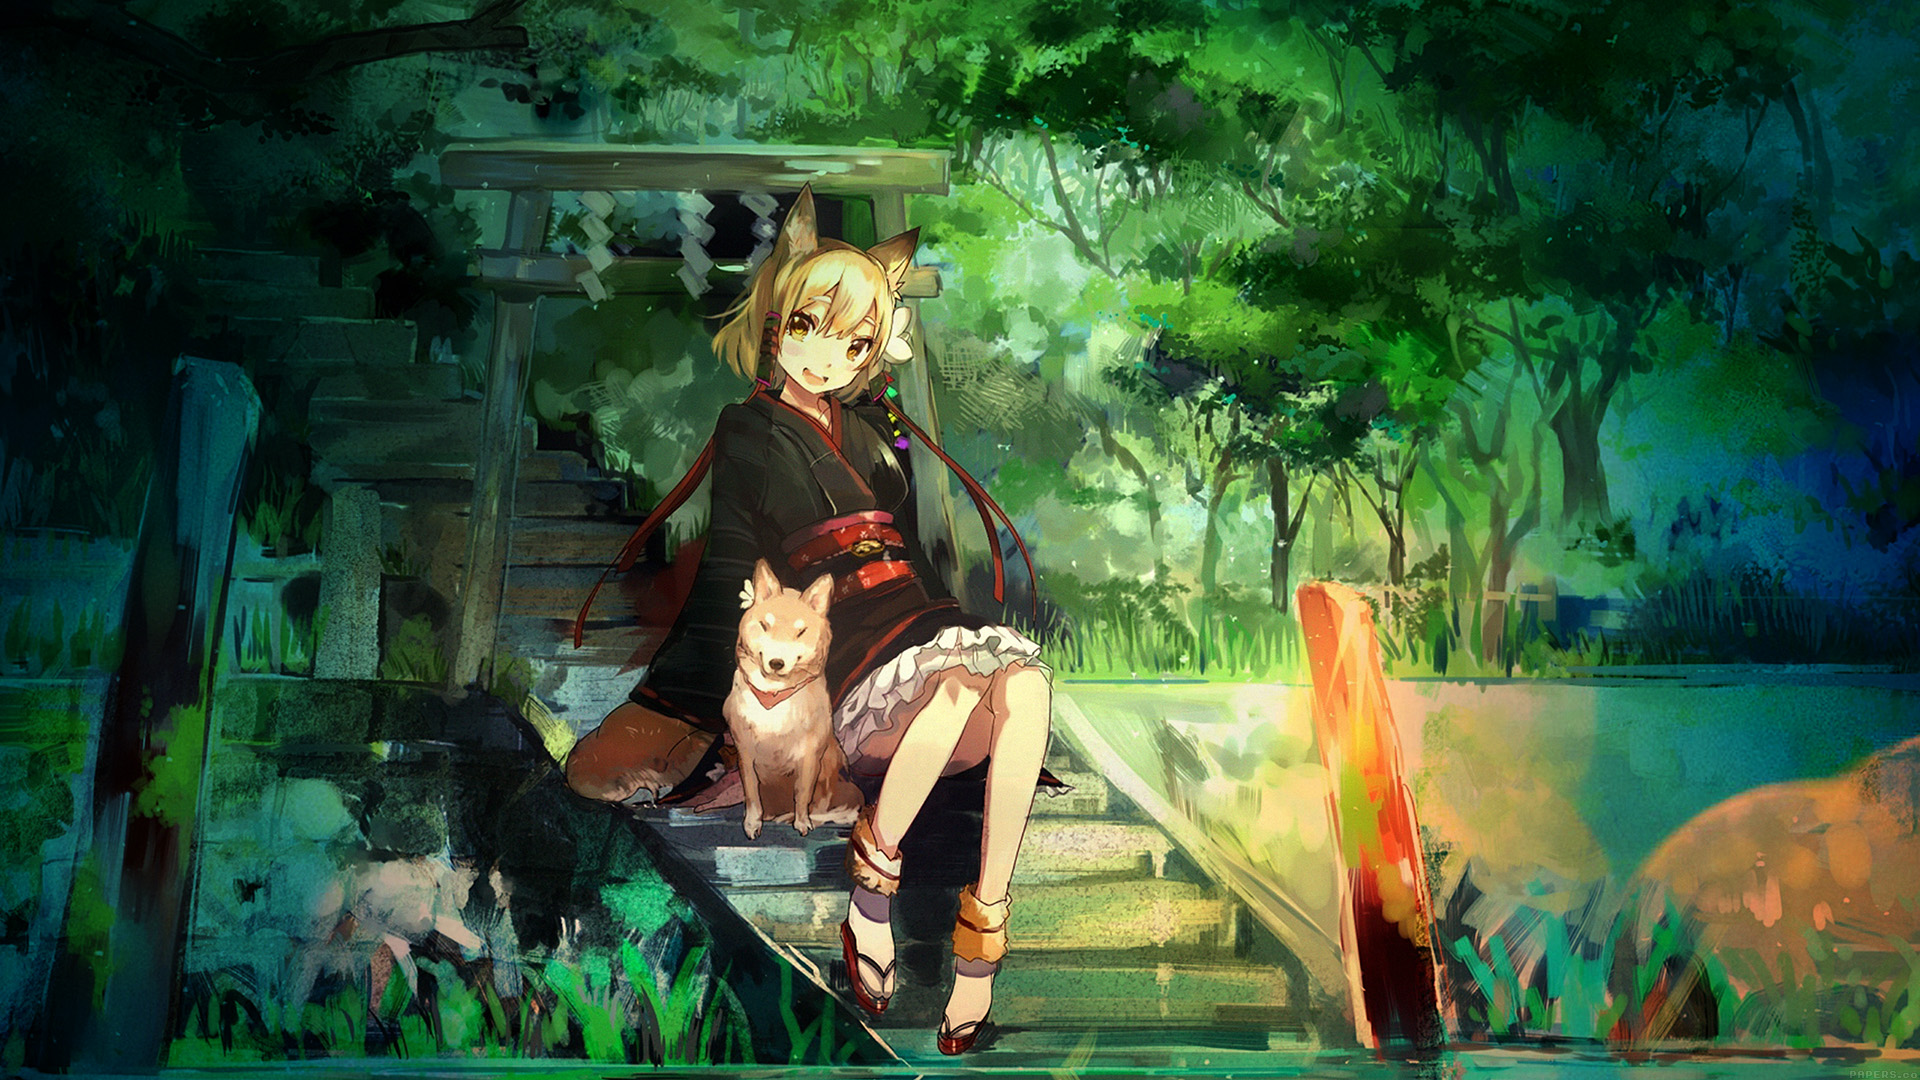 Gold Wallpaper Hd For Iphone 6 Aj47 Girl And Dog Green Nature Anime Art Illust Papers Co